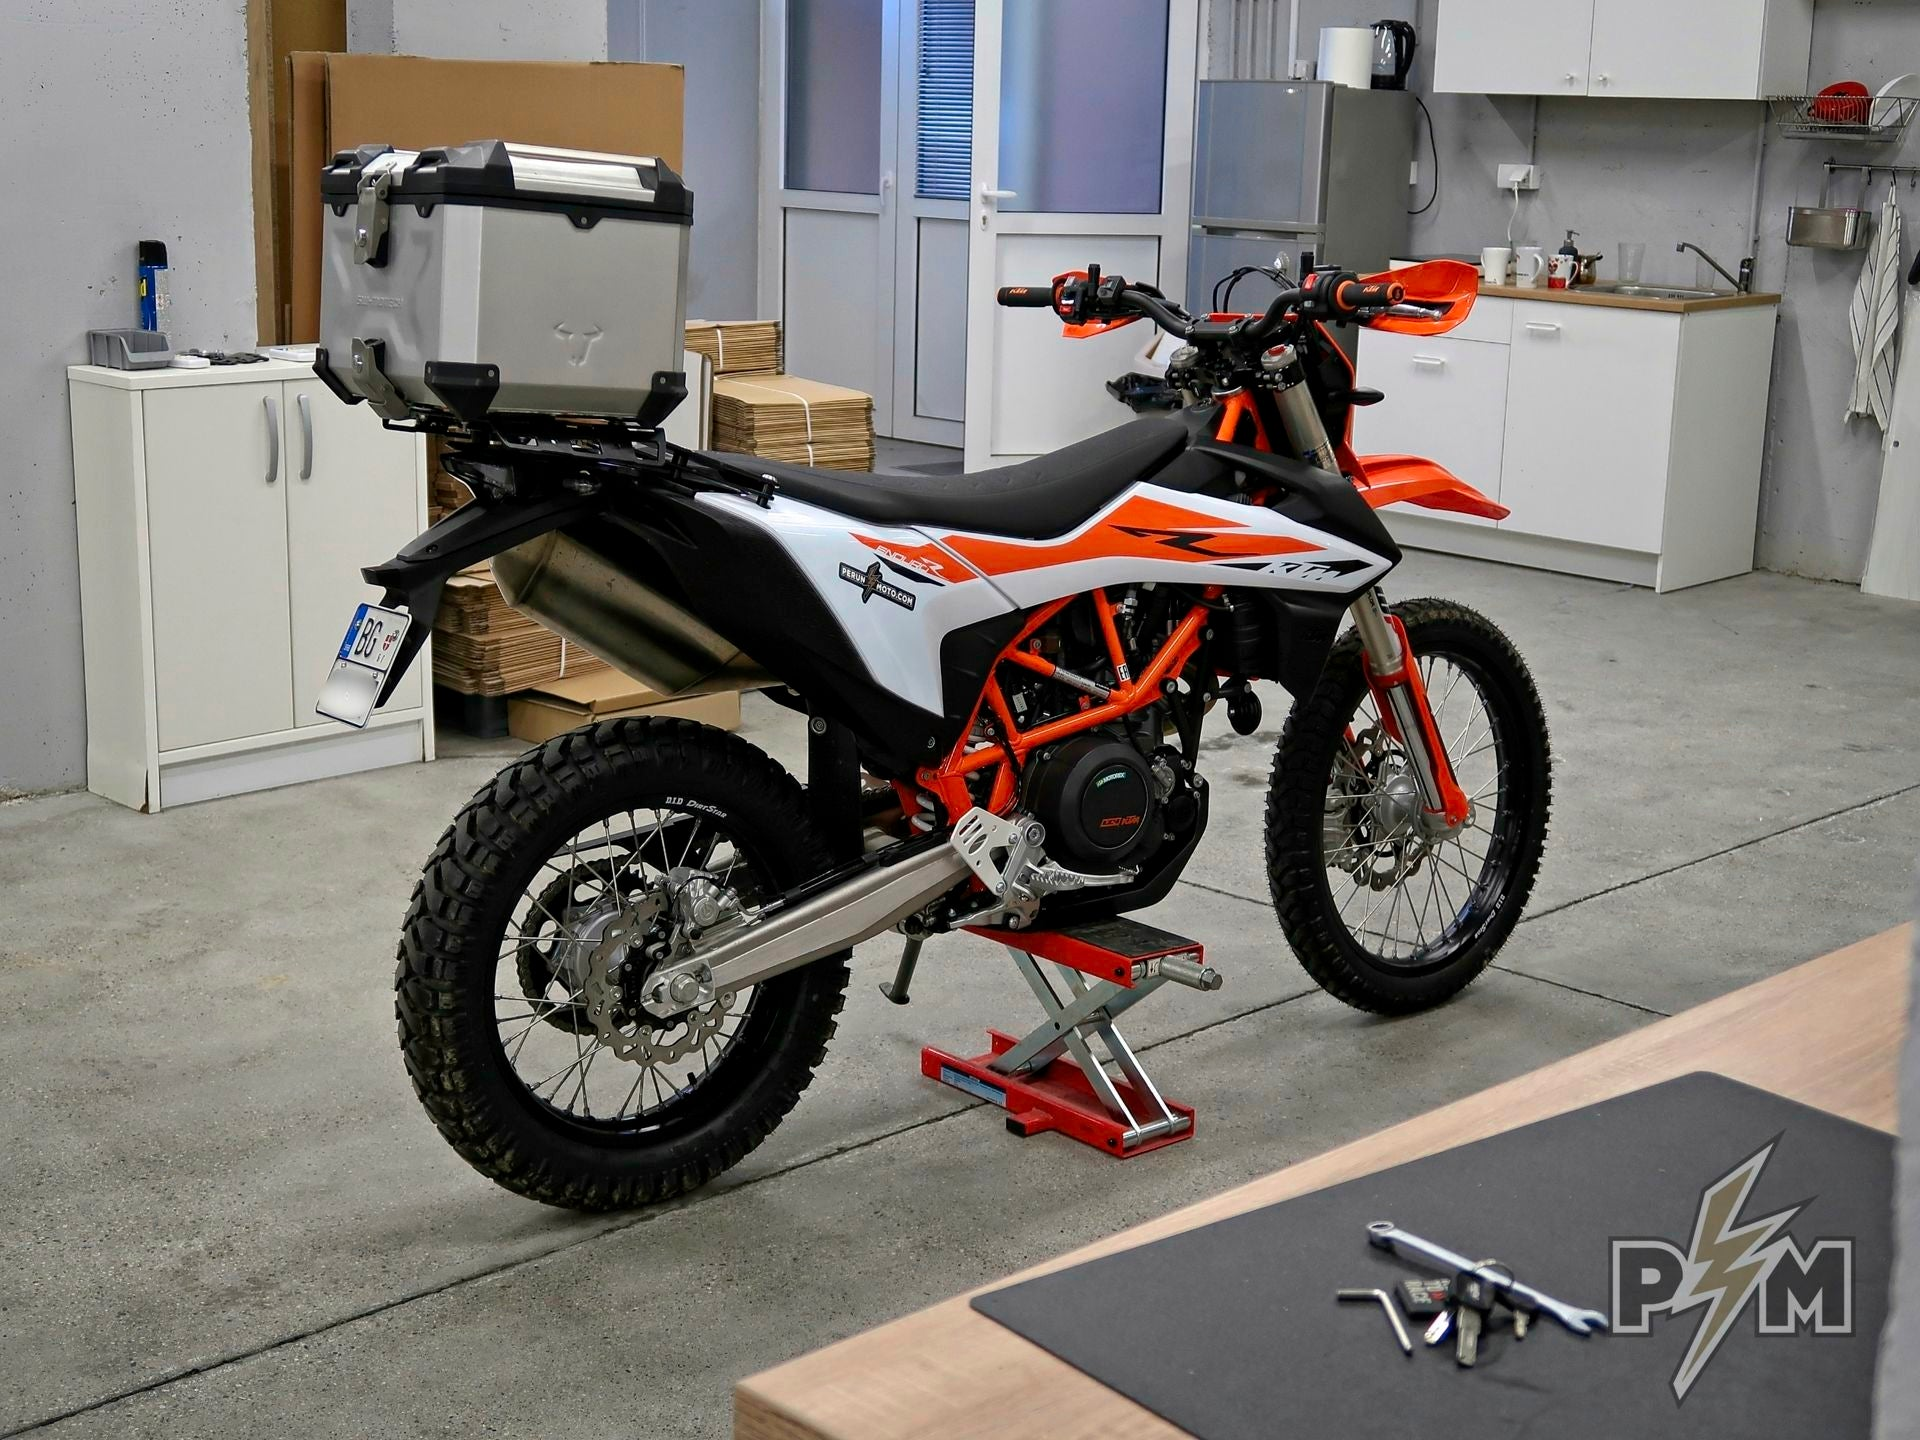 Blasphemy? Top case on KTM 690 Enduro R